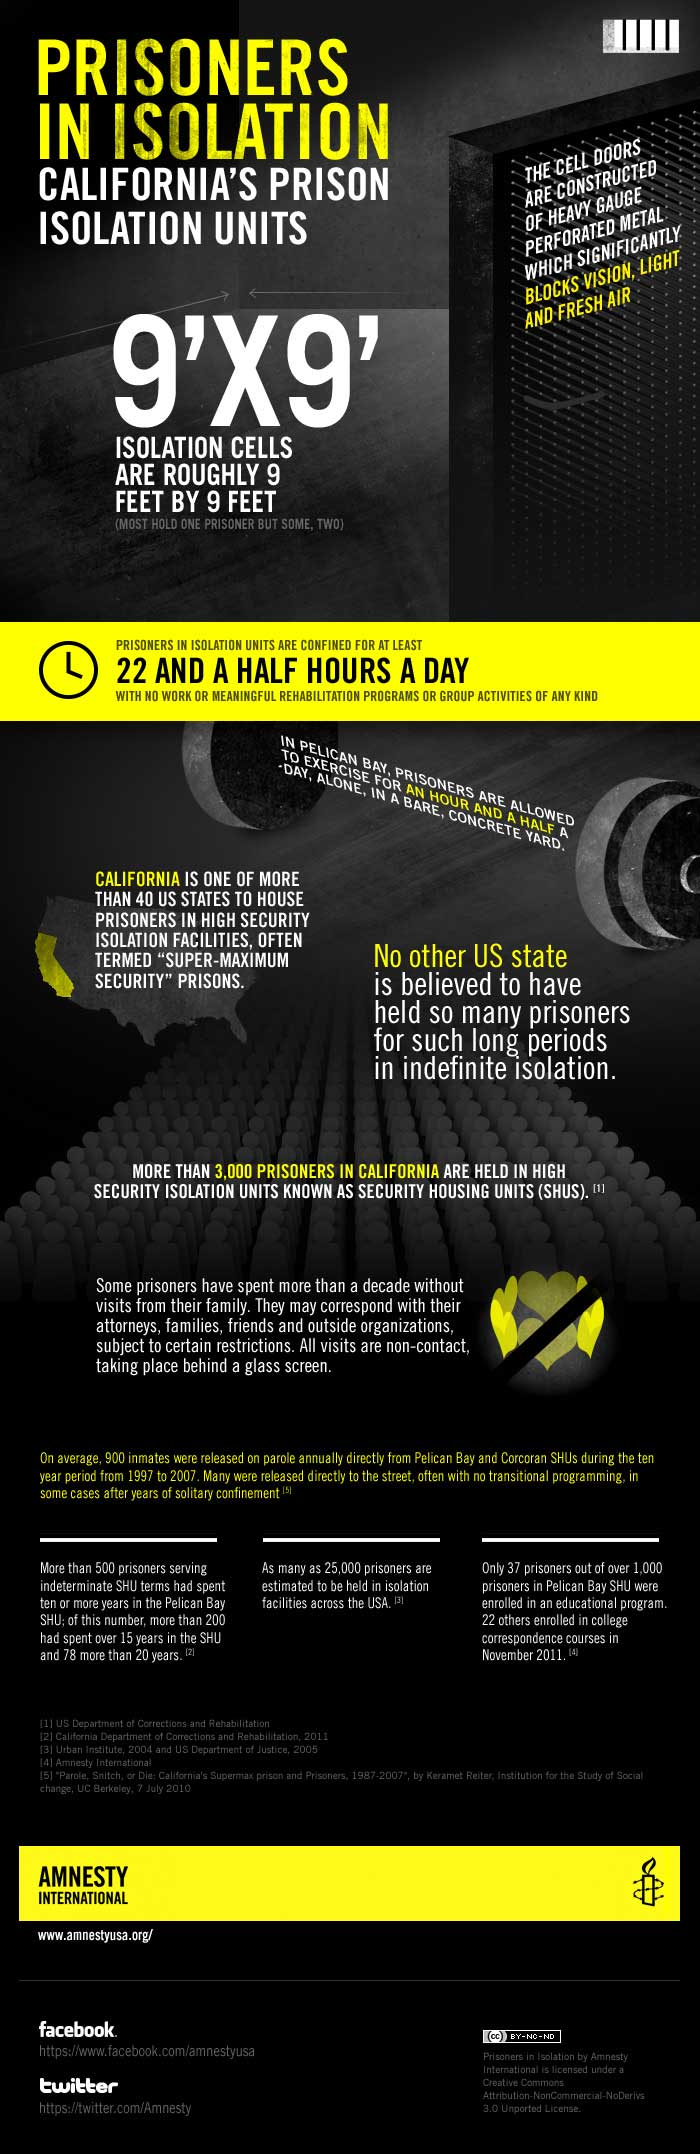 Amnesty International Infographic: Prisoners in isolation